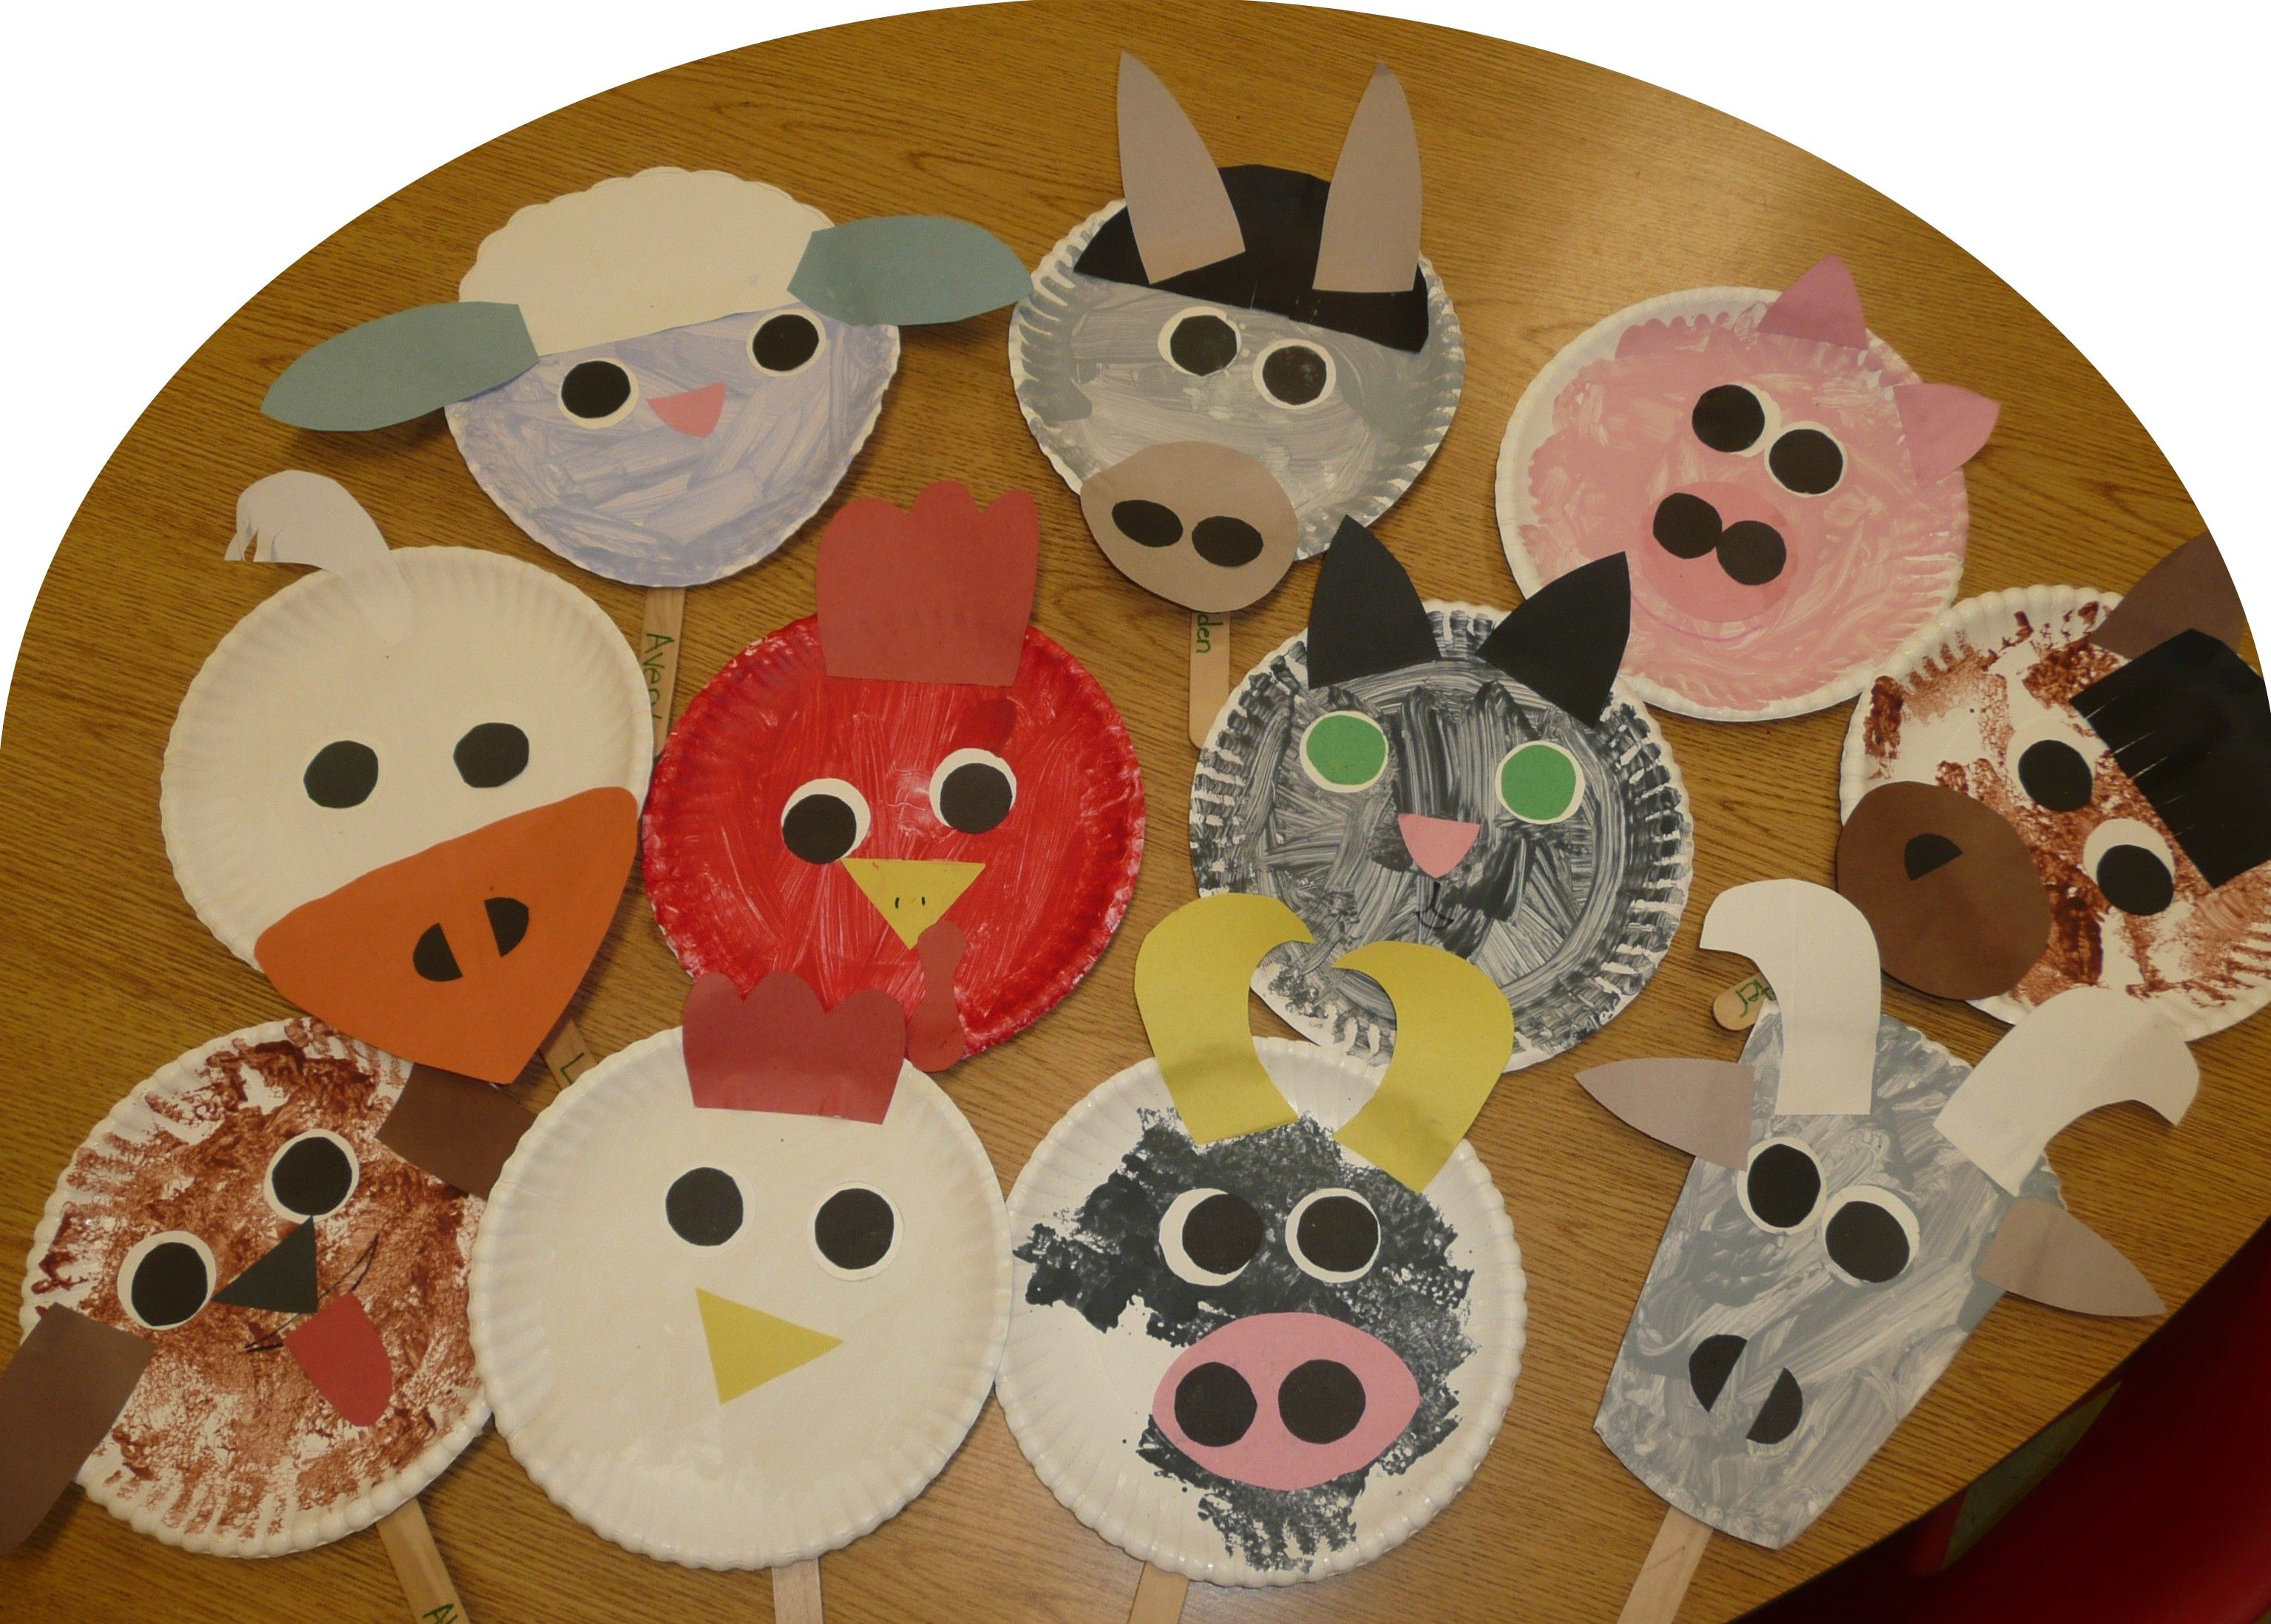 Paper Plate Farm Animals Using The Animals From The Big